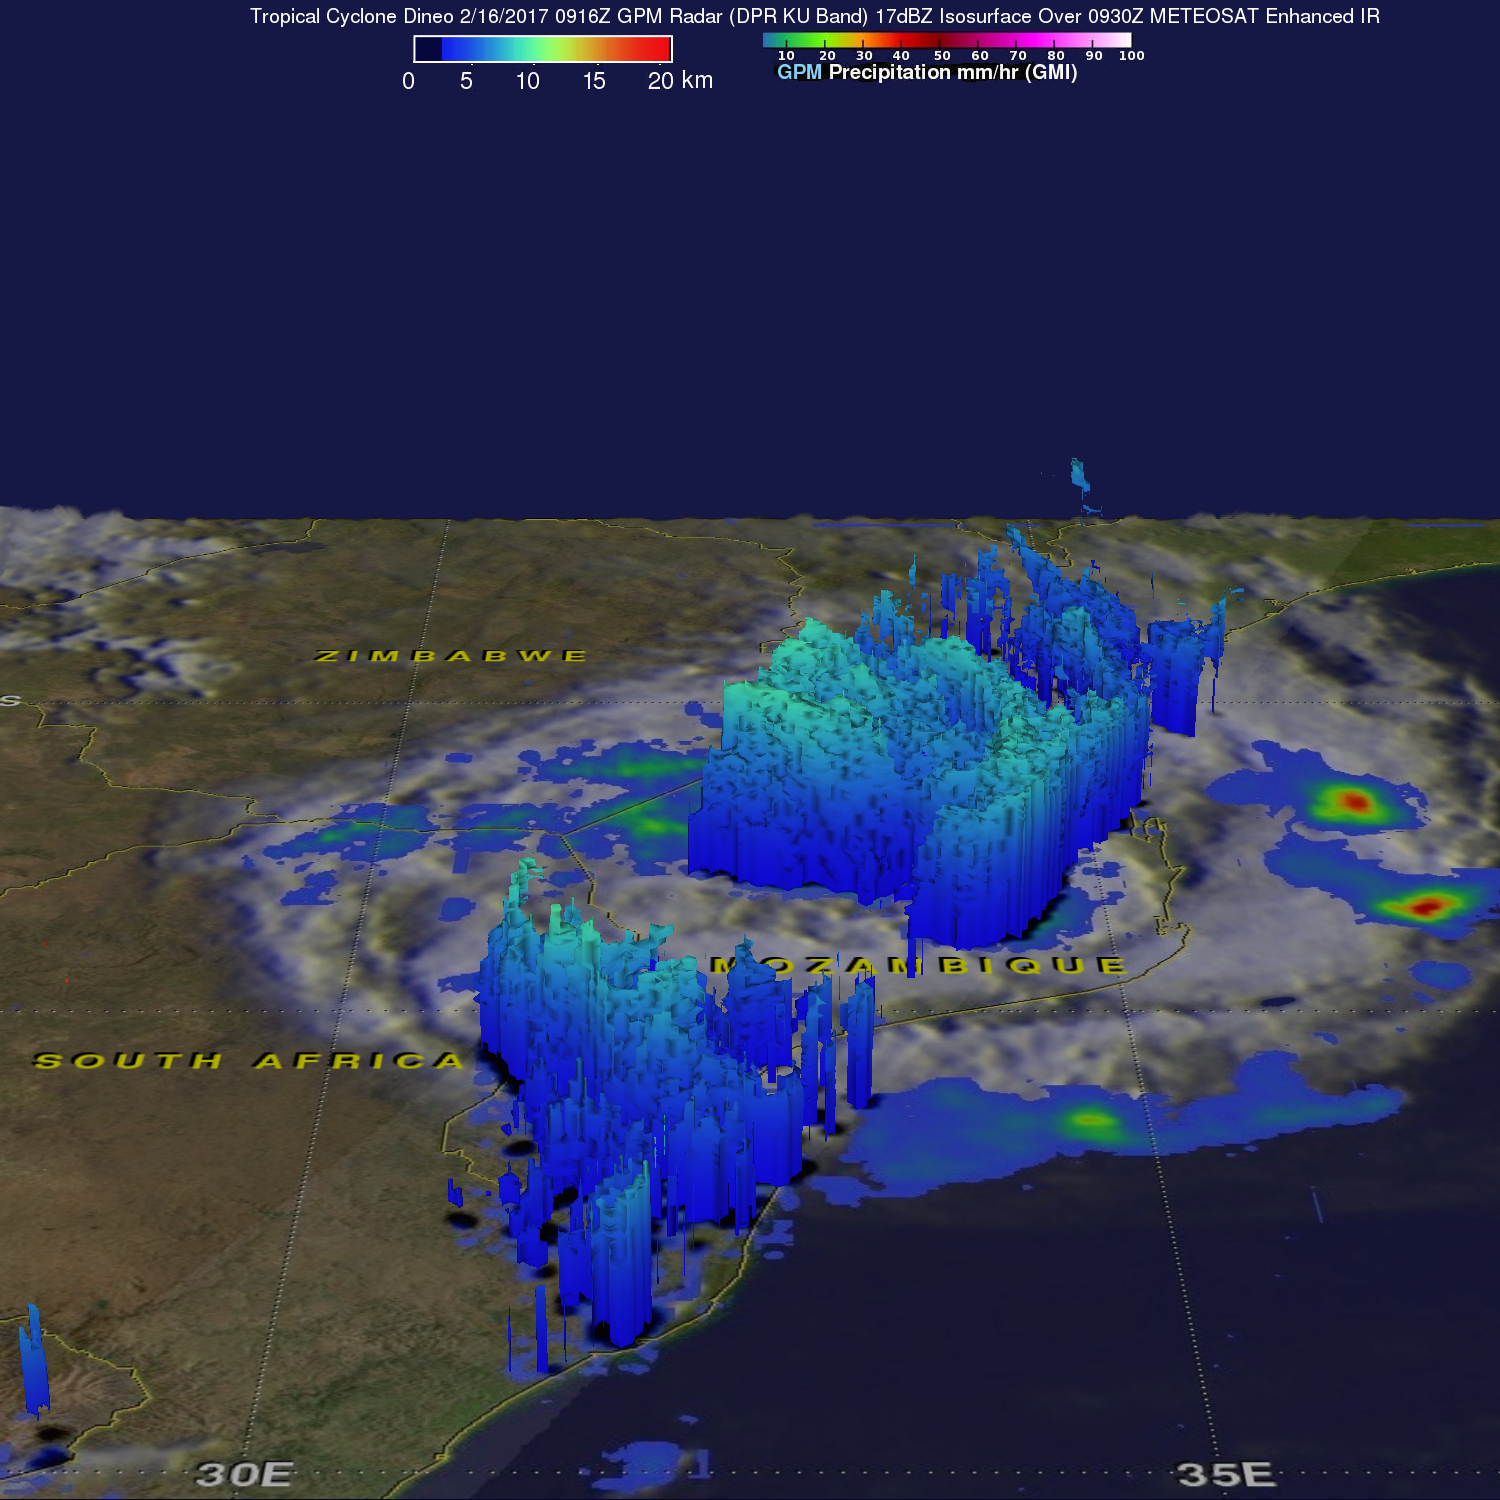 GPM Examines Deadly Tropical Cyclone Dineo